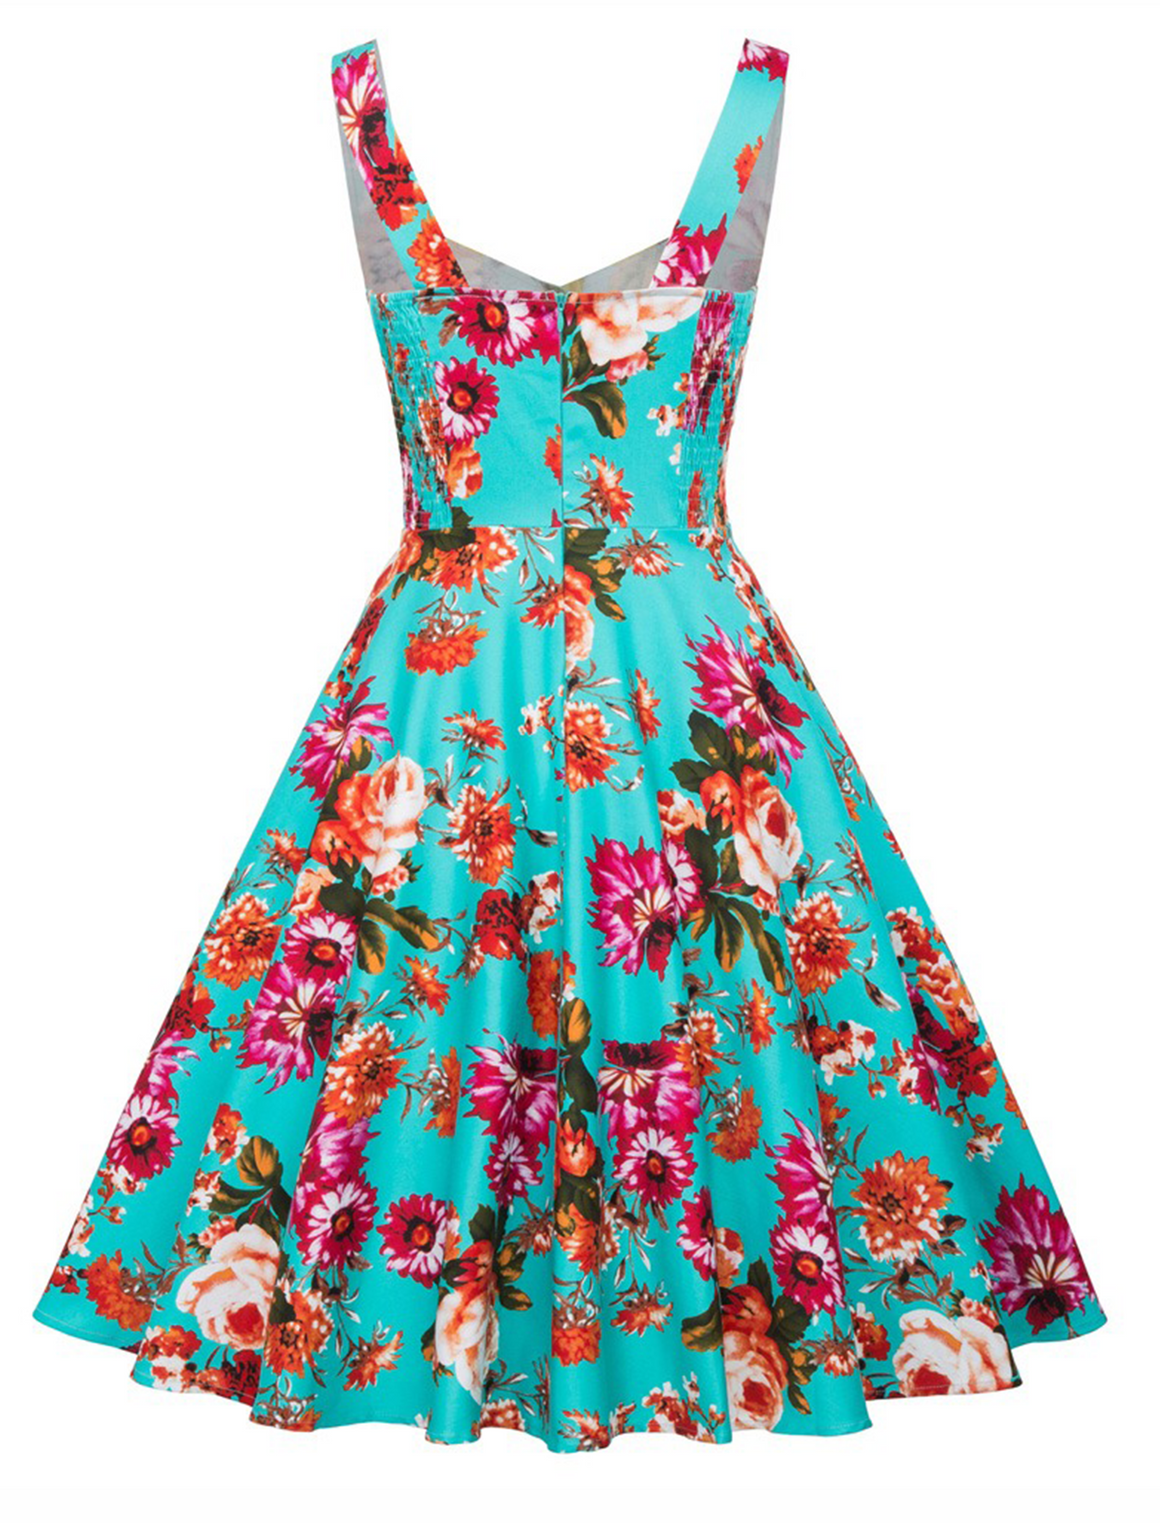 The Suzy Dress in Floral and Electric Blue Print by Ponyboy Vintage Clothing!